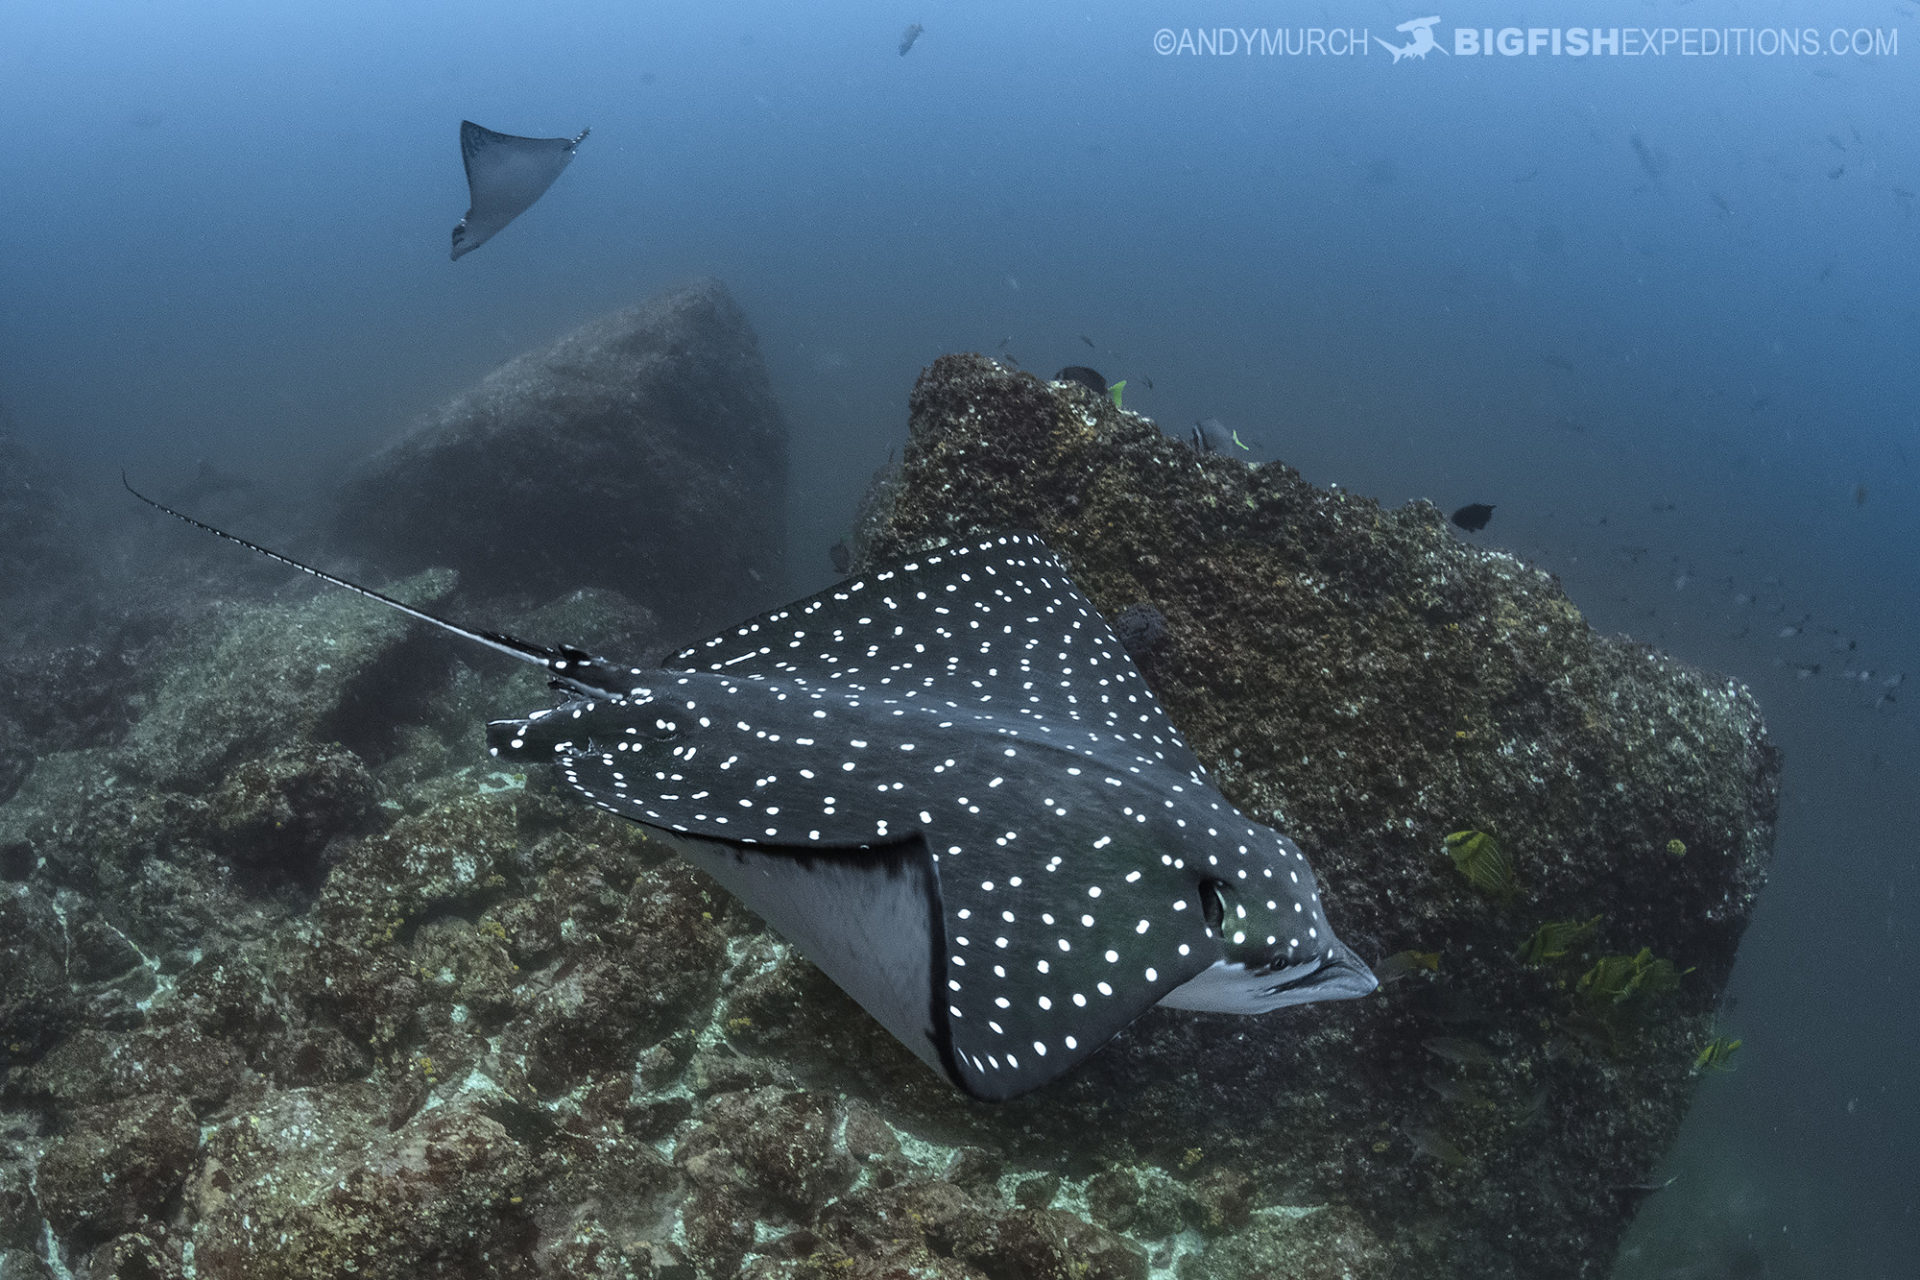 Pacific spotted eagle ray at the Bat Islands